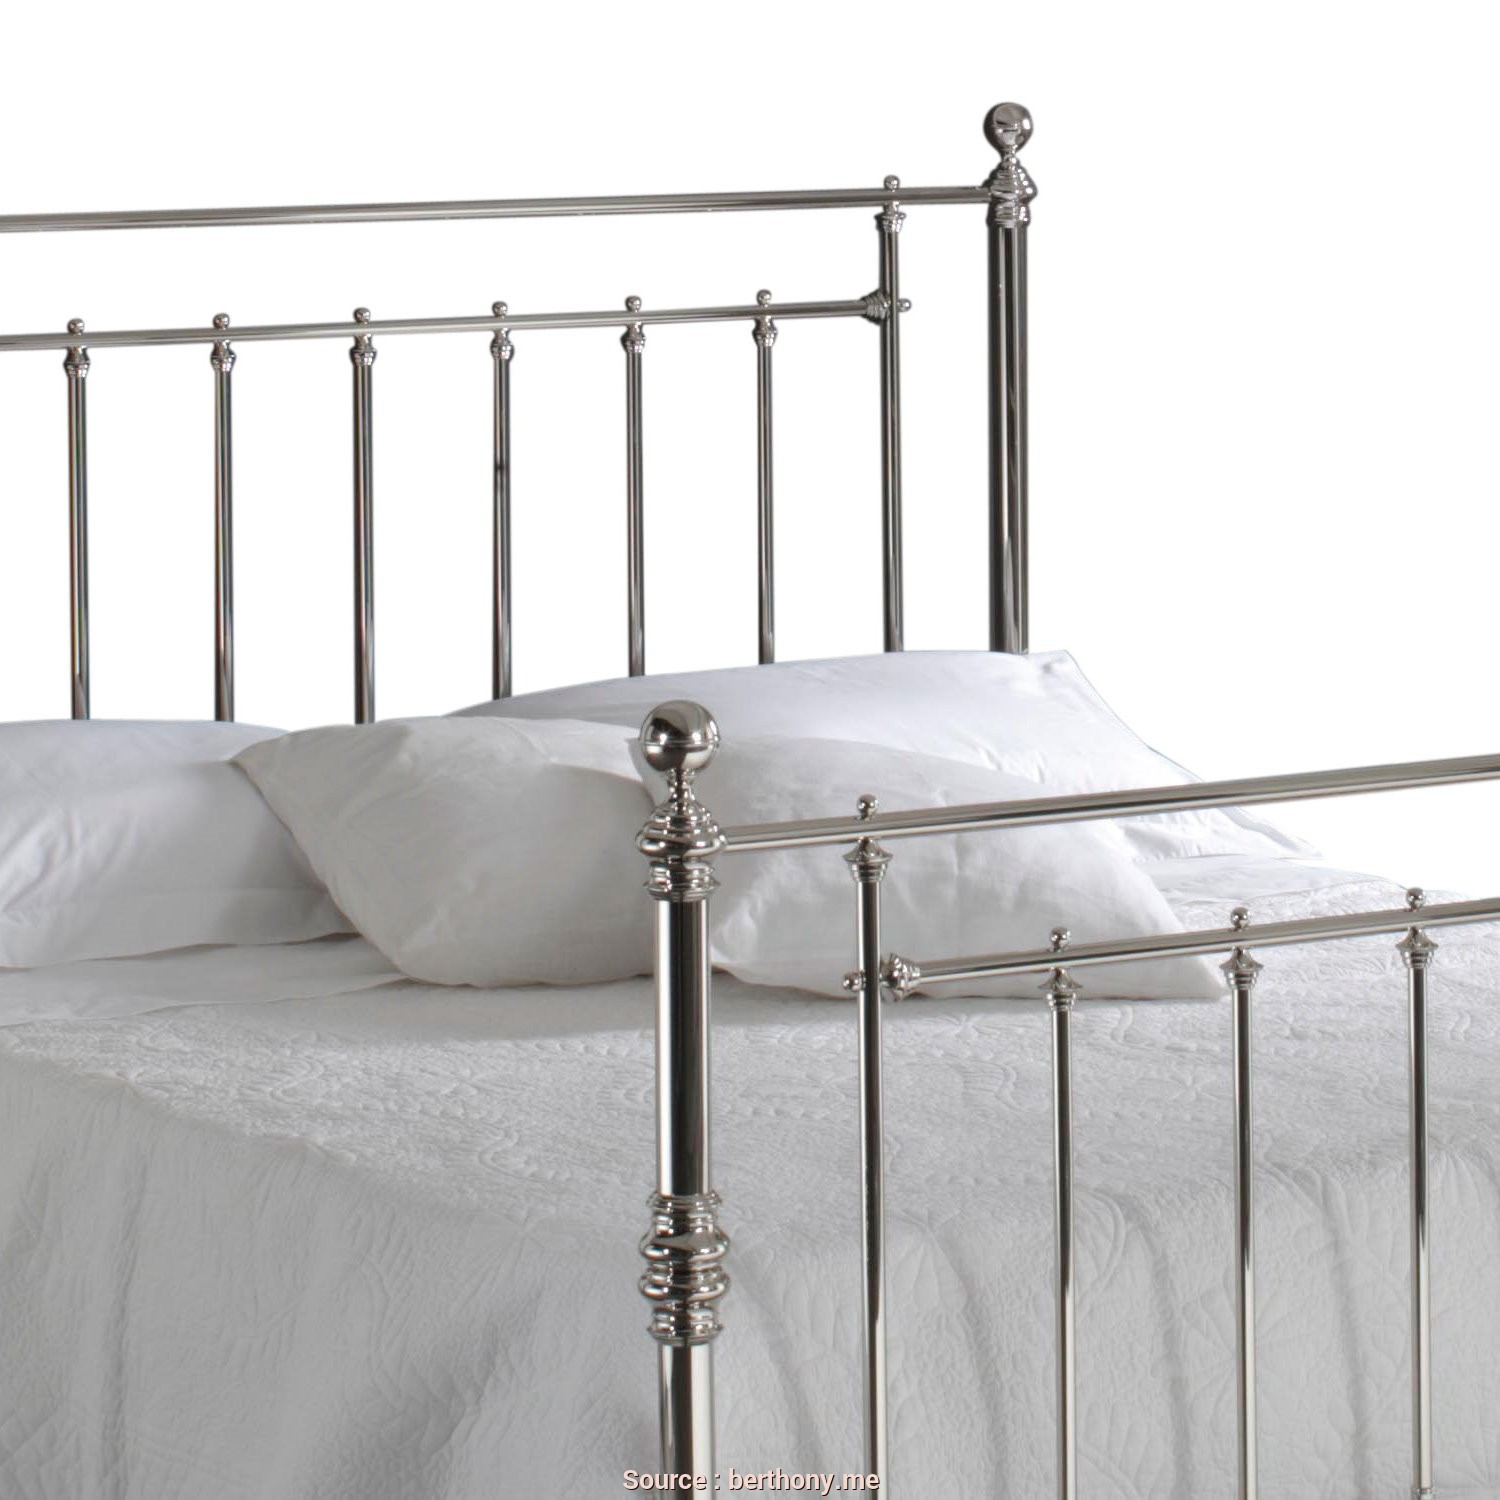 Divano Letto In Inglese Wordreference, Esotico Full Size Of Letto Matrimoniale Inglese Letto Matrimoniale Traduttore Inglese Letto Matrimoniale In Inglese Wordreference Letto